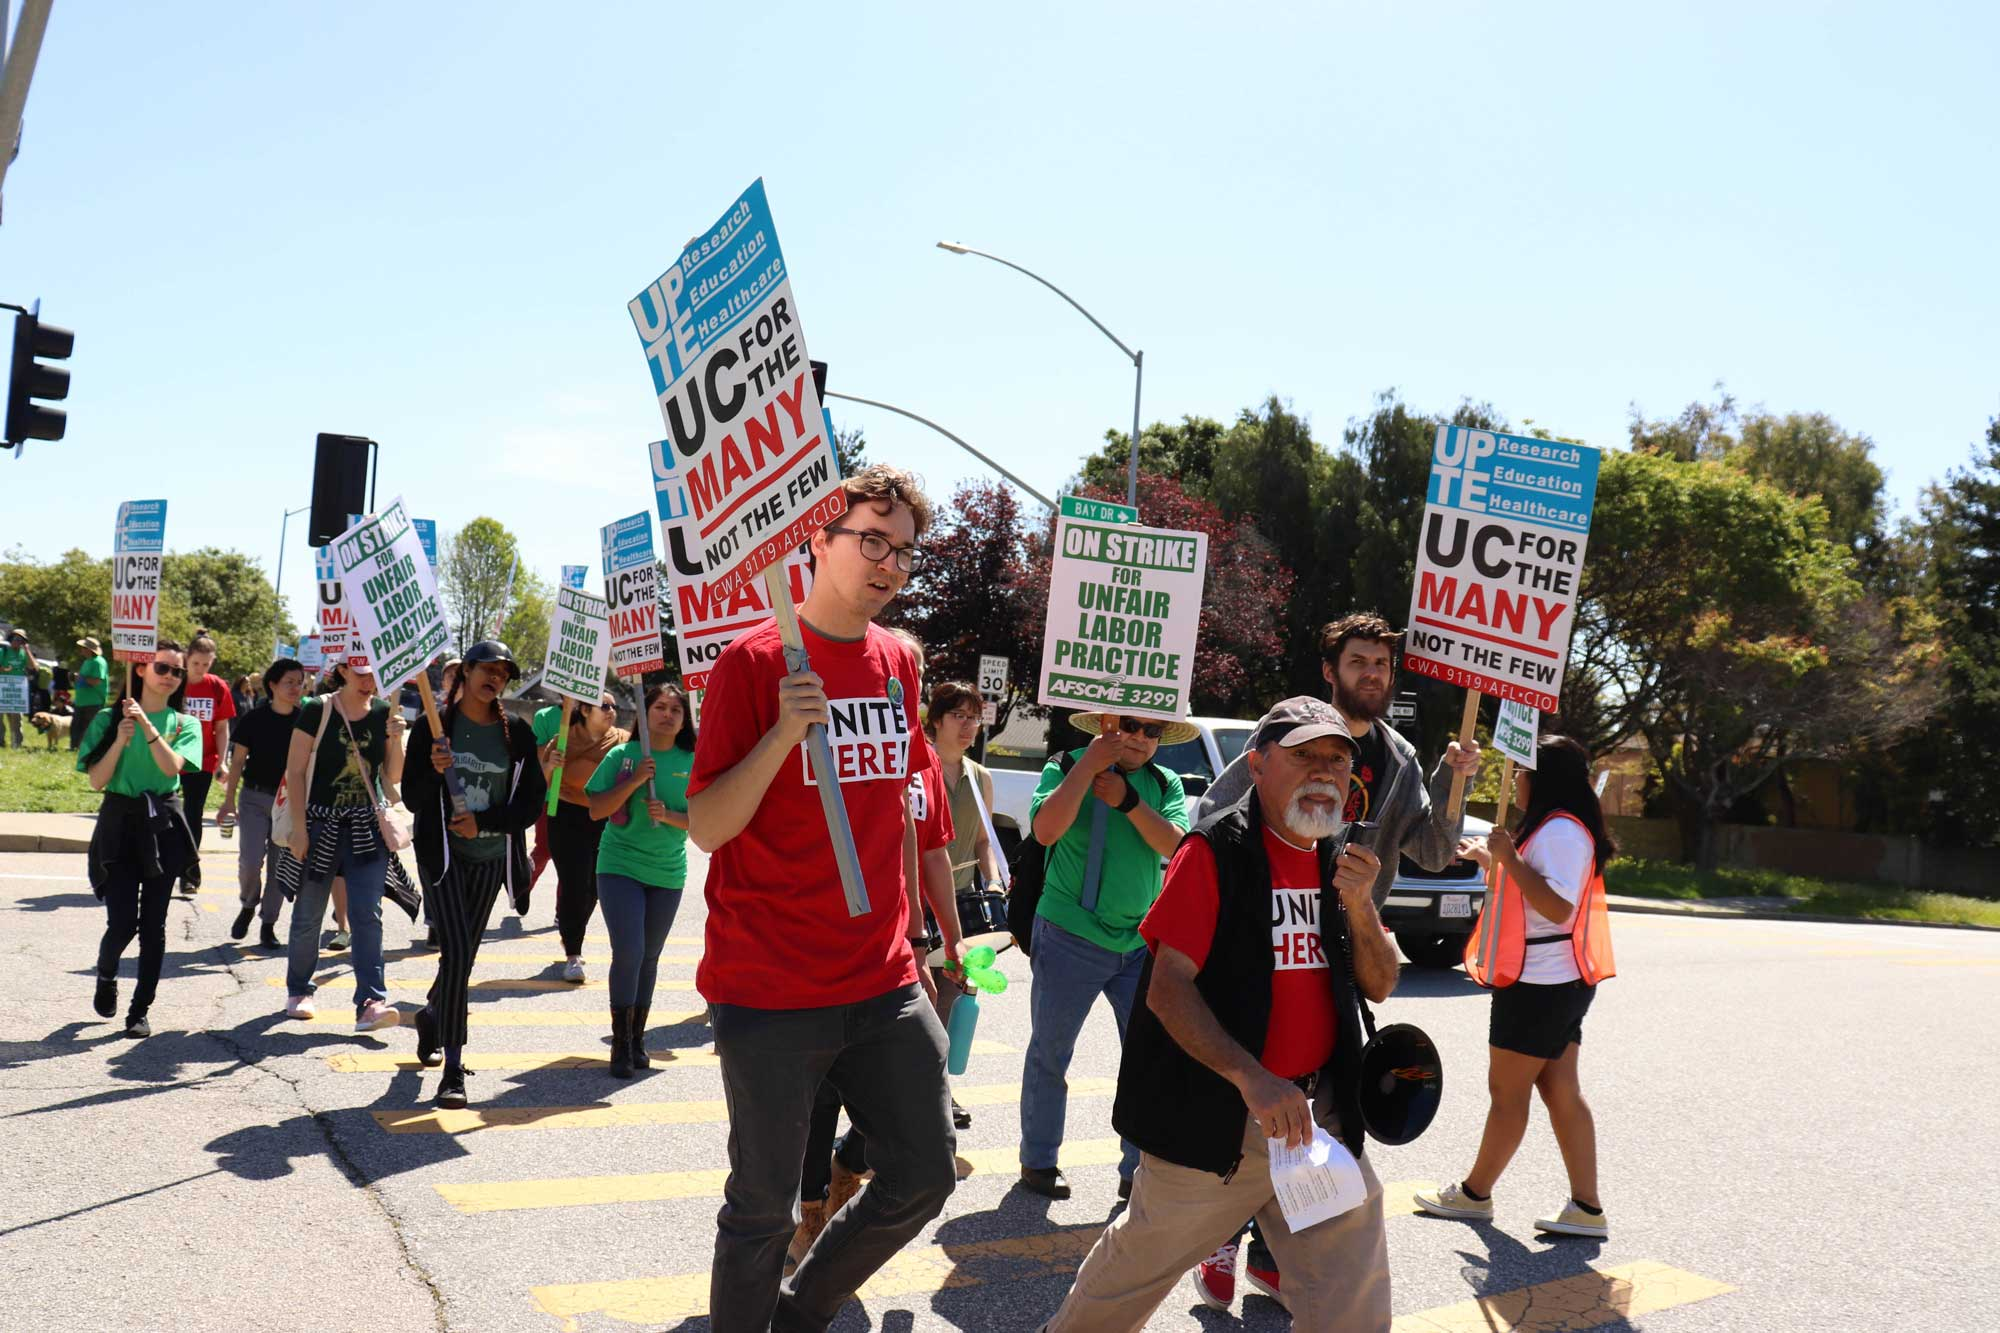 AFSCME 3299 Strikes for Labor Rights